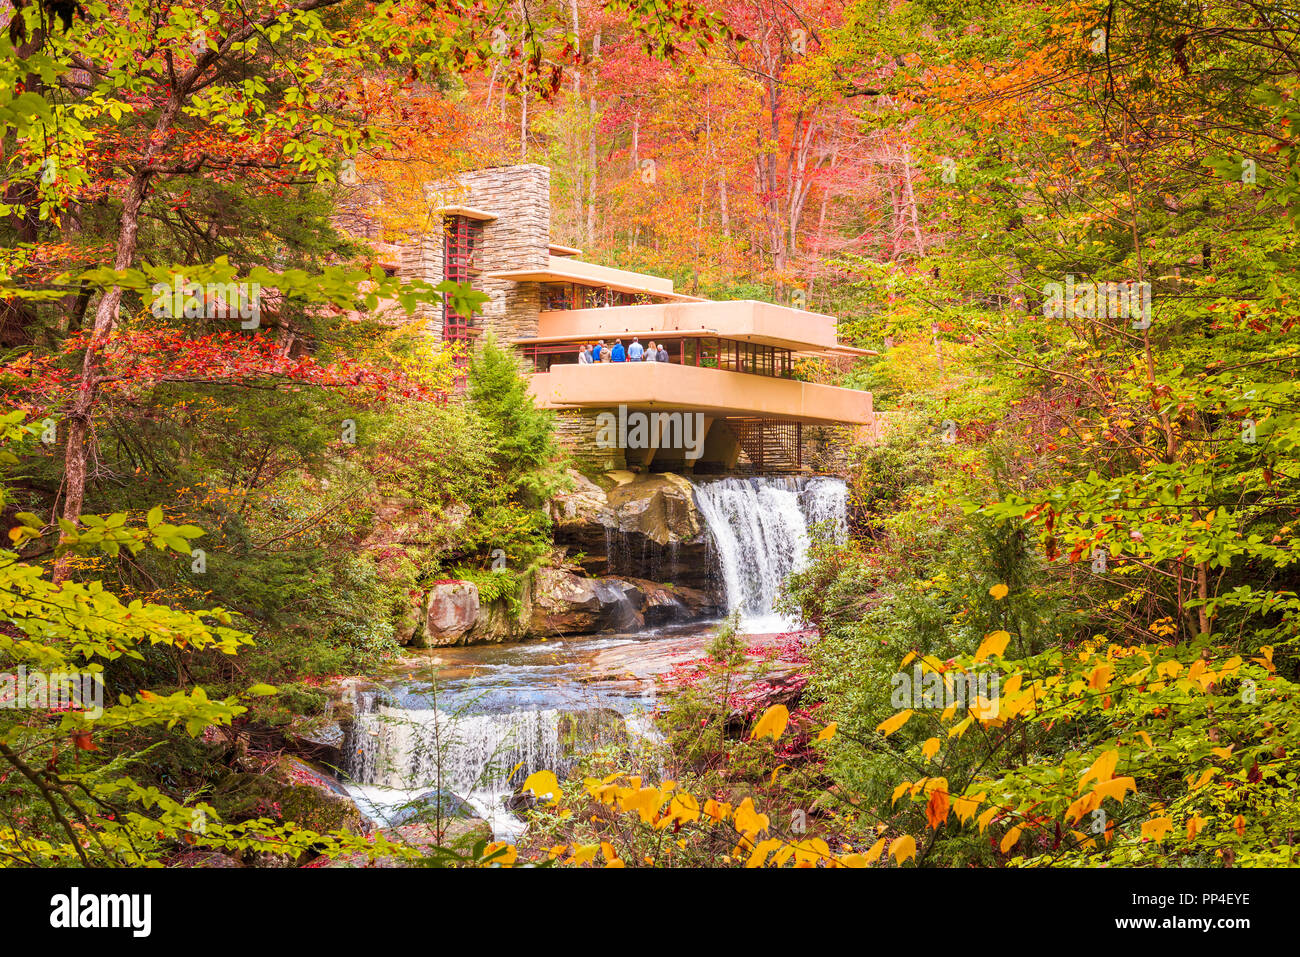 MILL Run, Pennsylvania, USA - Oktober 24, 2017: Fallingwater über Bear Run Wasserfall im Laurel Highlands der Allegheny Mountains. Stockbild